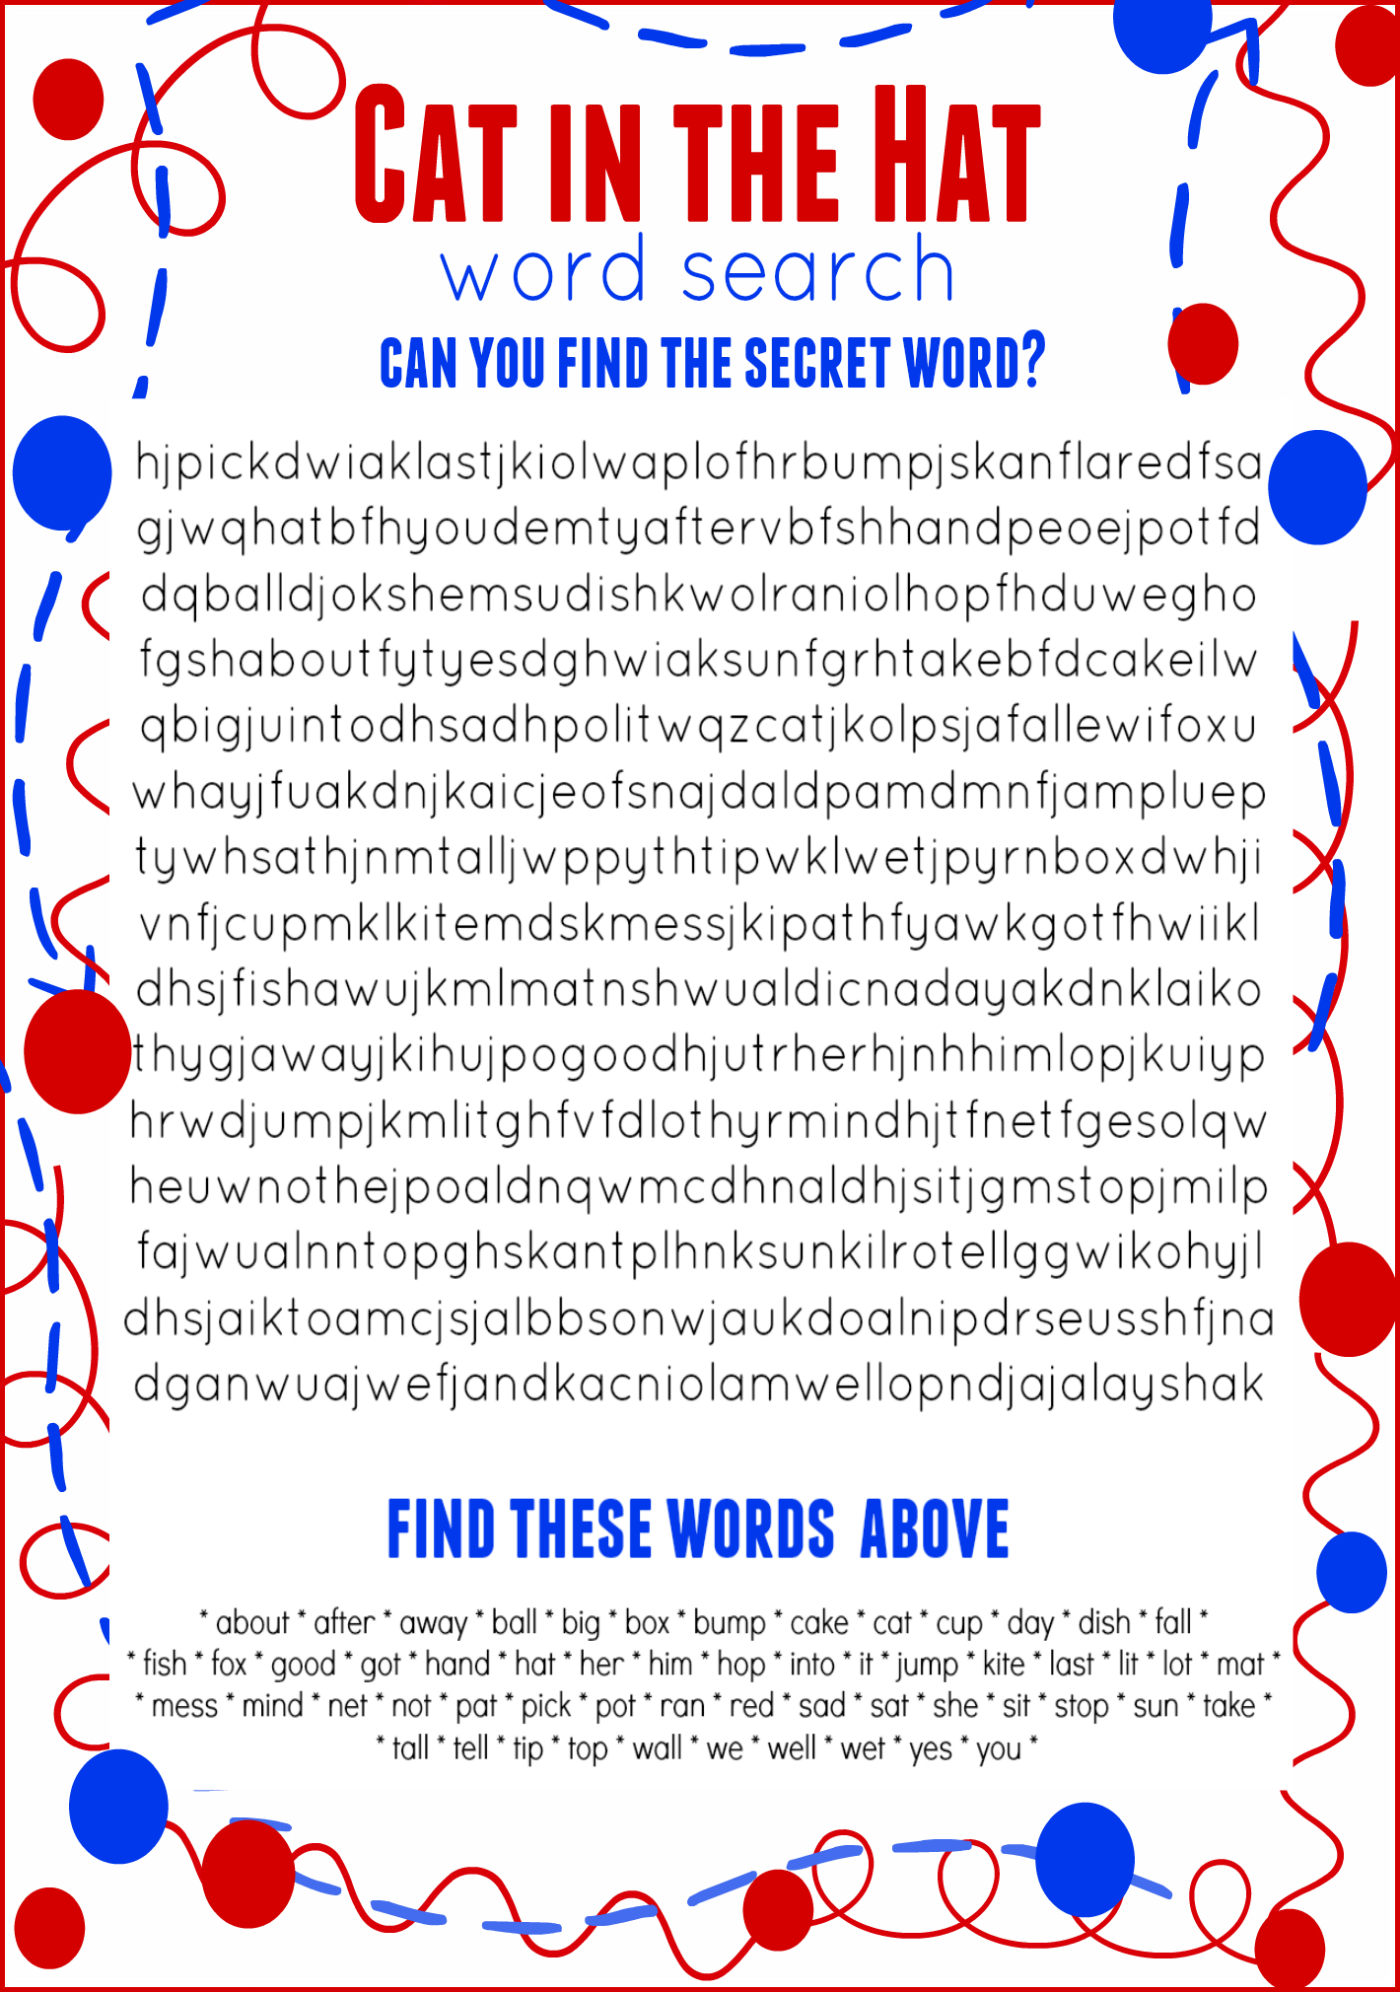 Cat In The Hat Word Search Free Printable Dr. Seuss Birthday - Free Printable Cat In The Hat Pictures